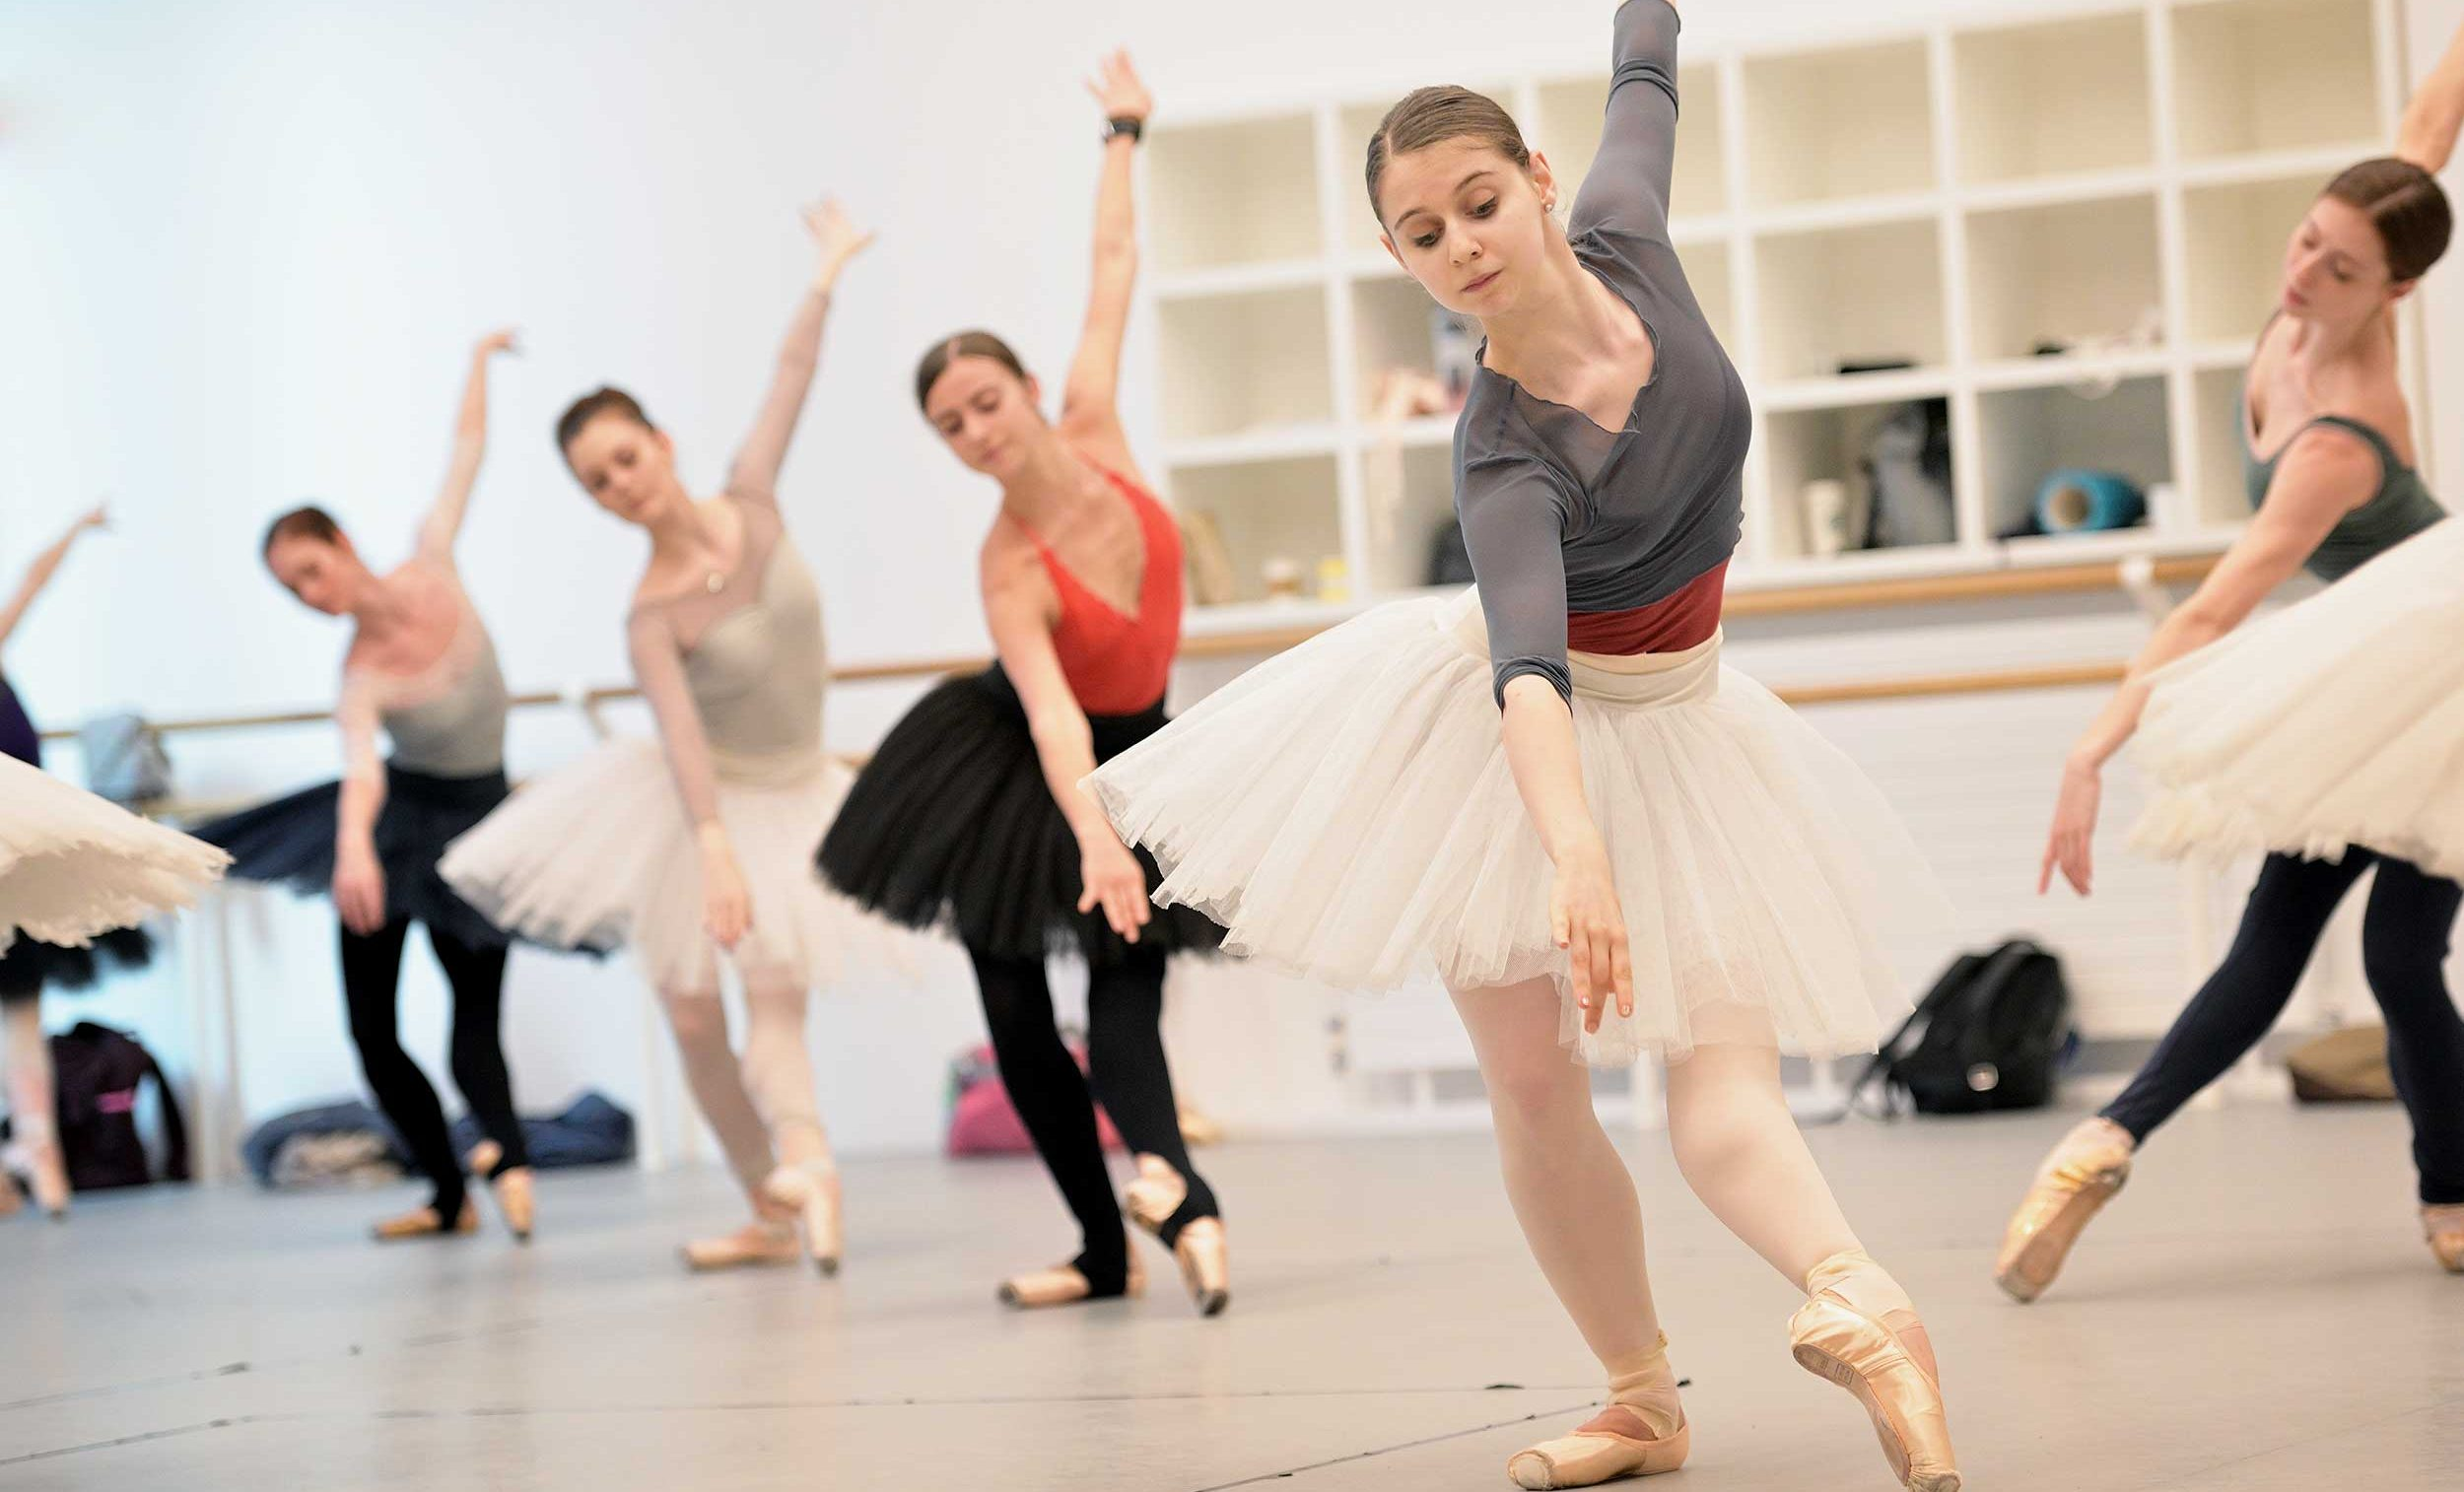 English-National-Ballet,-Julia-Conway-in-front,-rehearse-Etudes-ahead-of-their-70th-Anniversary-Gala-(c)-Laurent-Liotardo